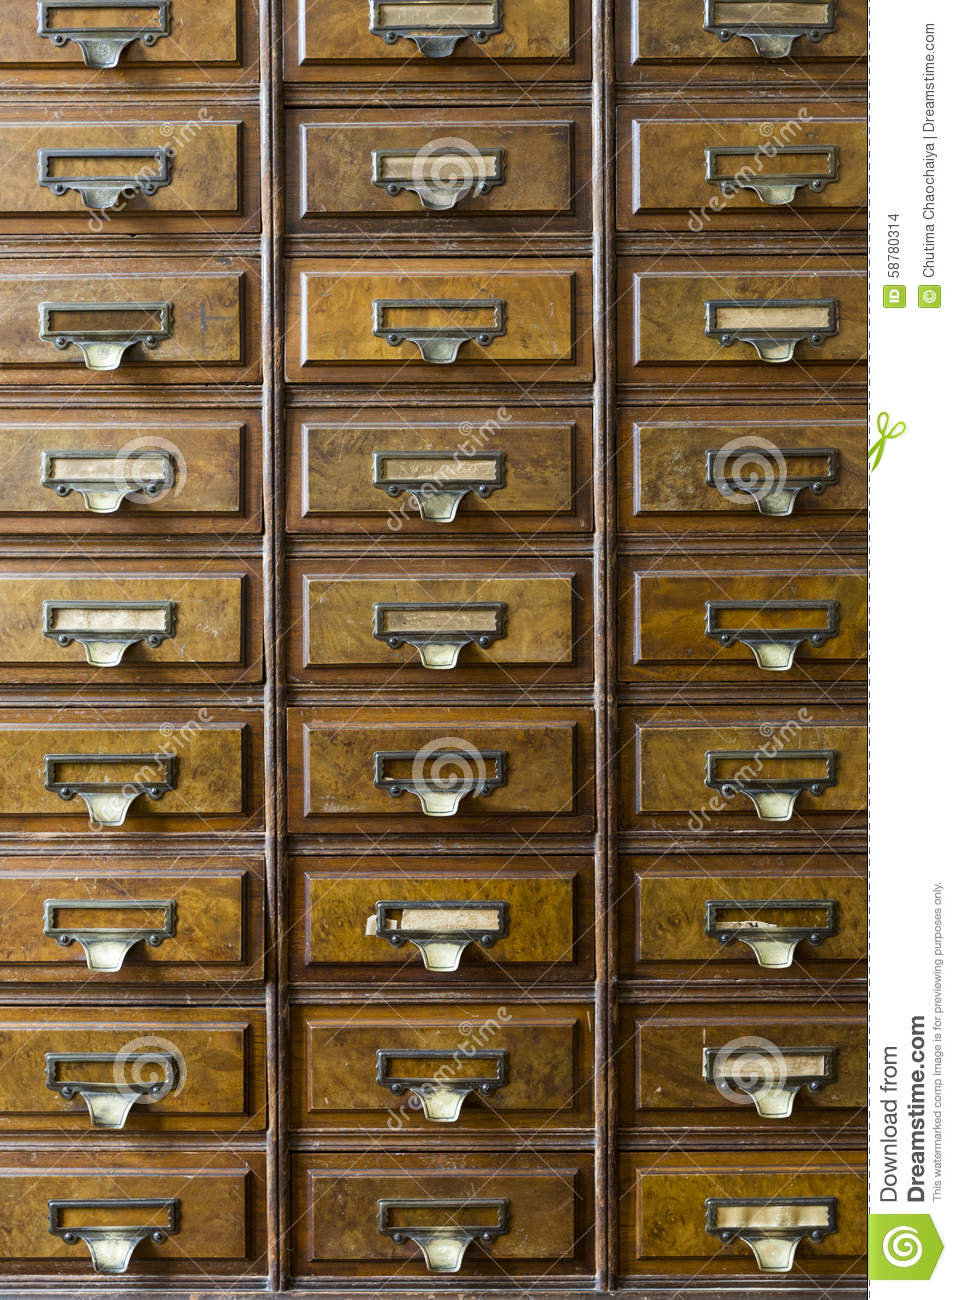 Apothecary Cabinet close-up of an old apothecary cabinet stock photo - image: 58780314